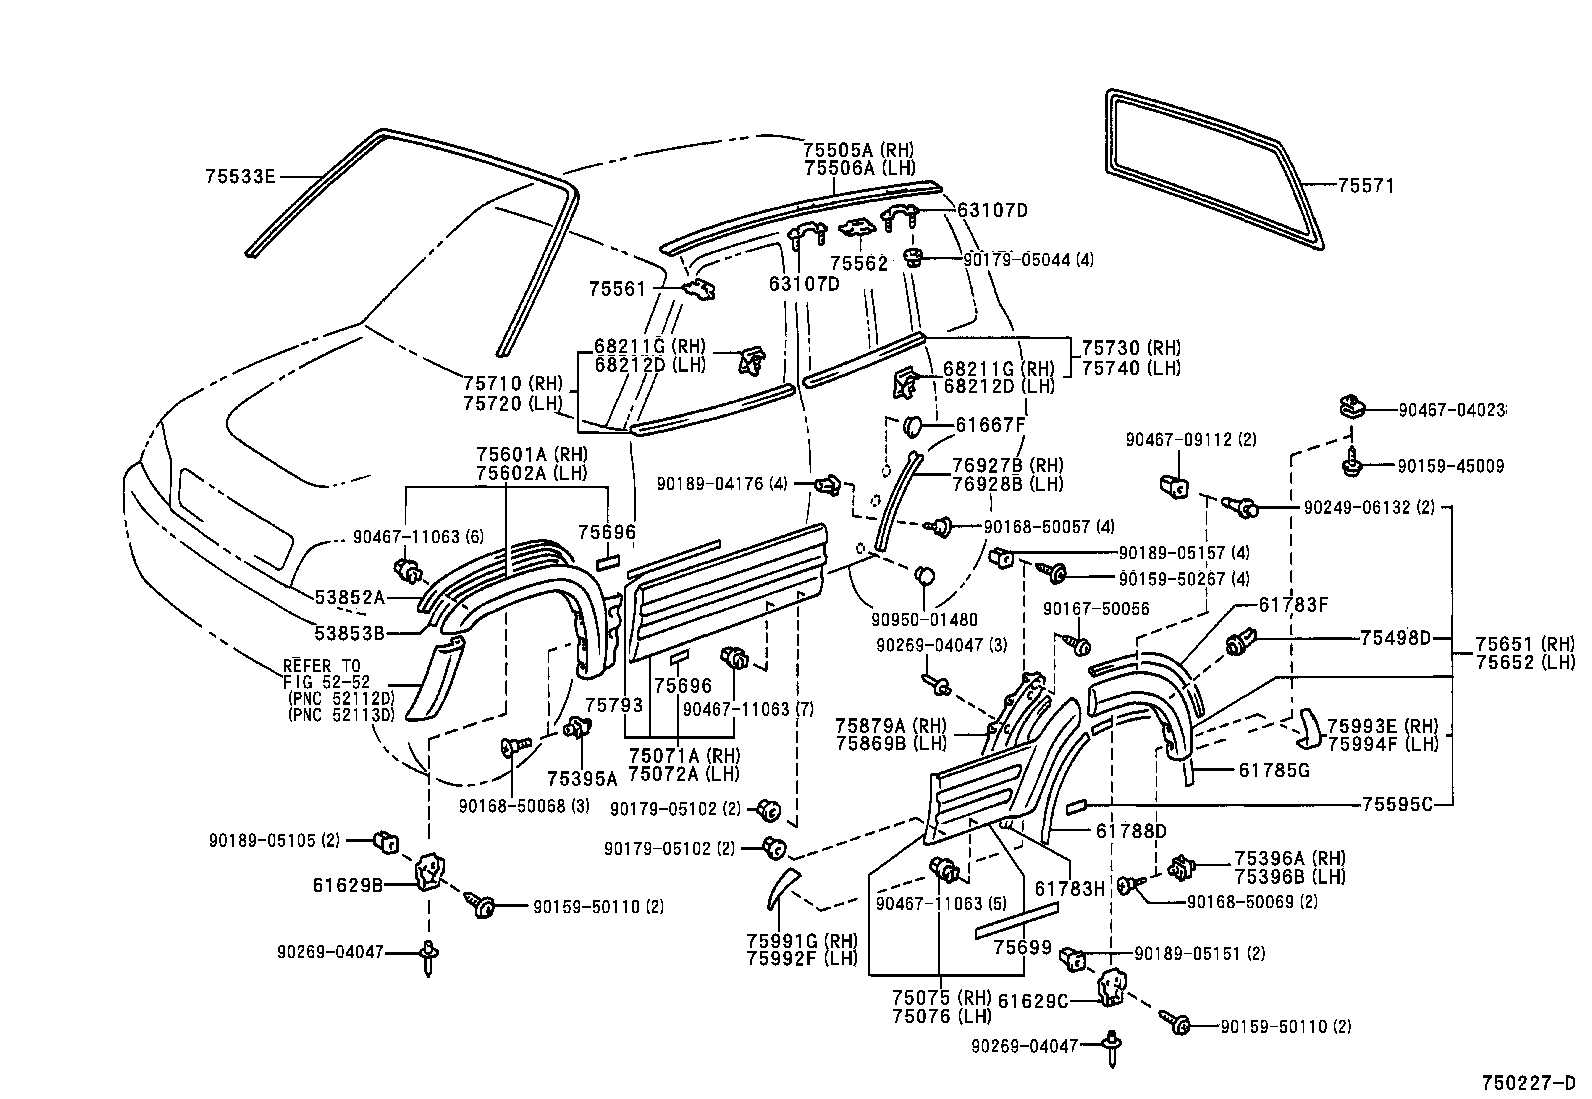 toyota rav4 body parts diagram  u2013 periodic  u0026 diagrams science